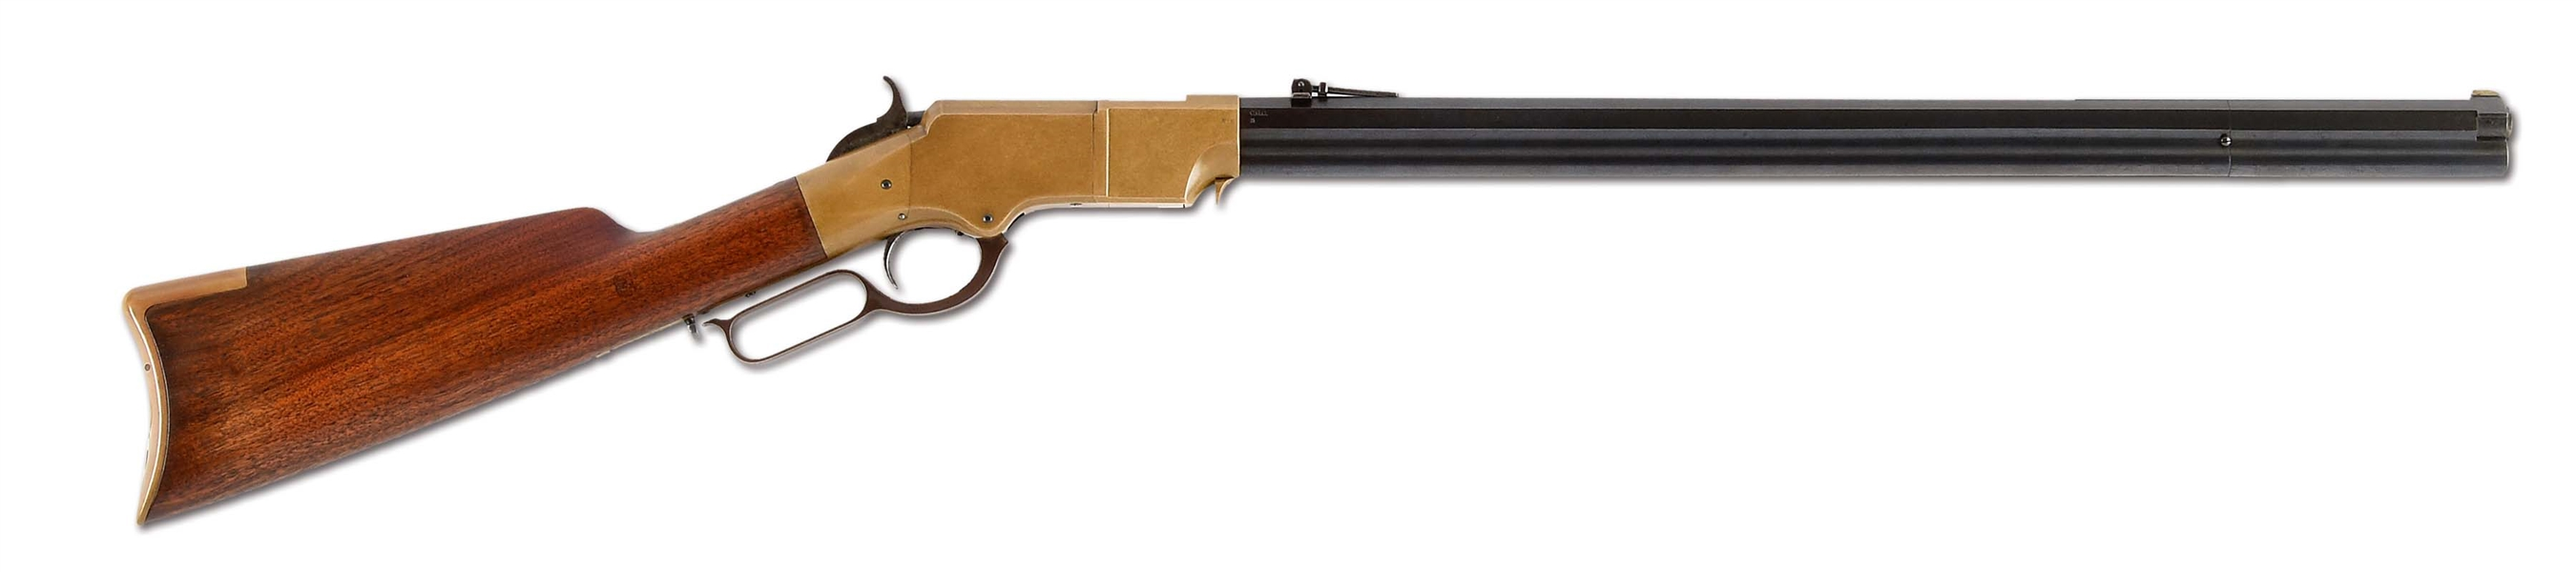 (A) Extraordinary Martially Marked Henry Repeating Rifle (1863).